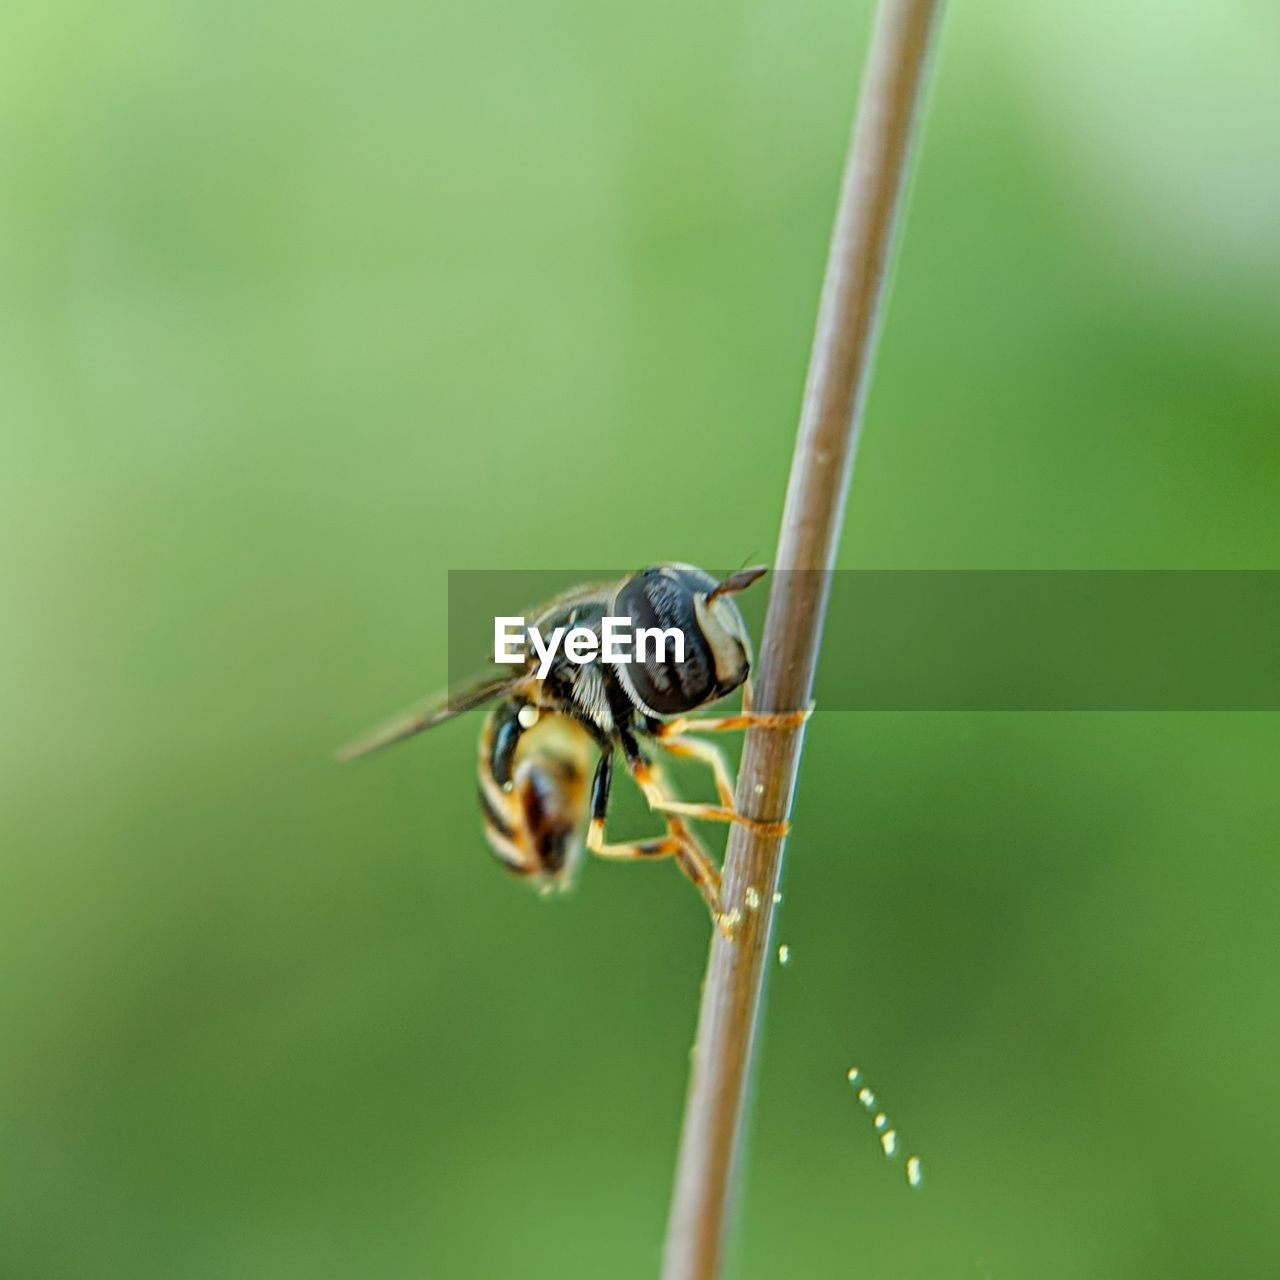 CLOSE-UP OF INSECT ON GREEN PLANT